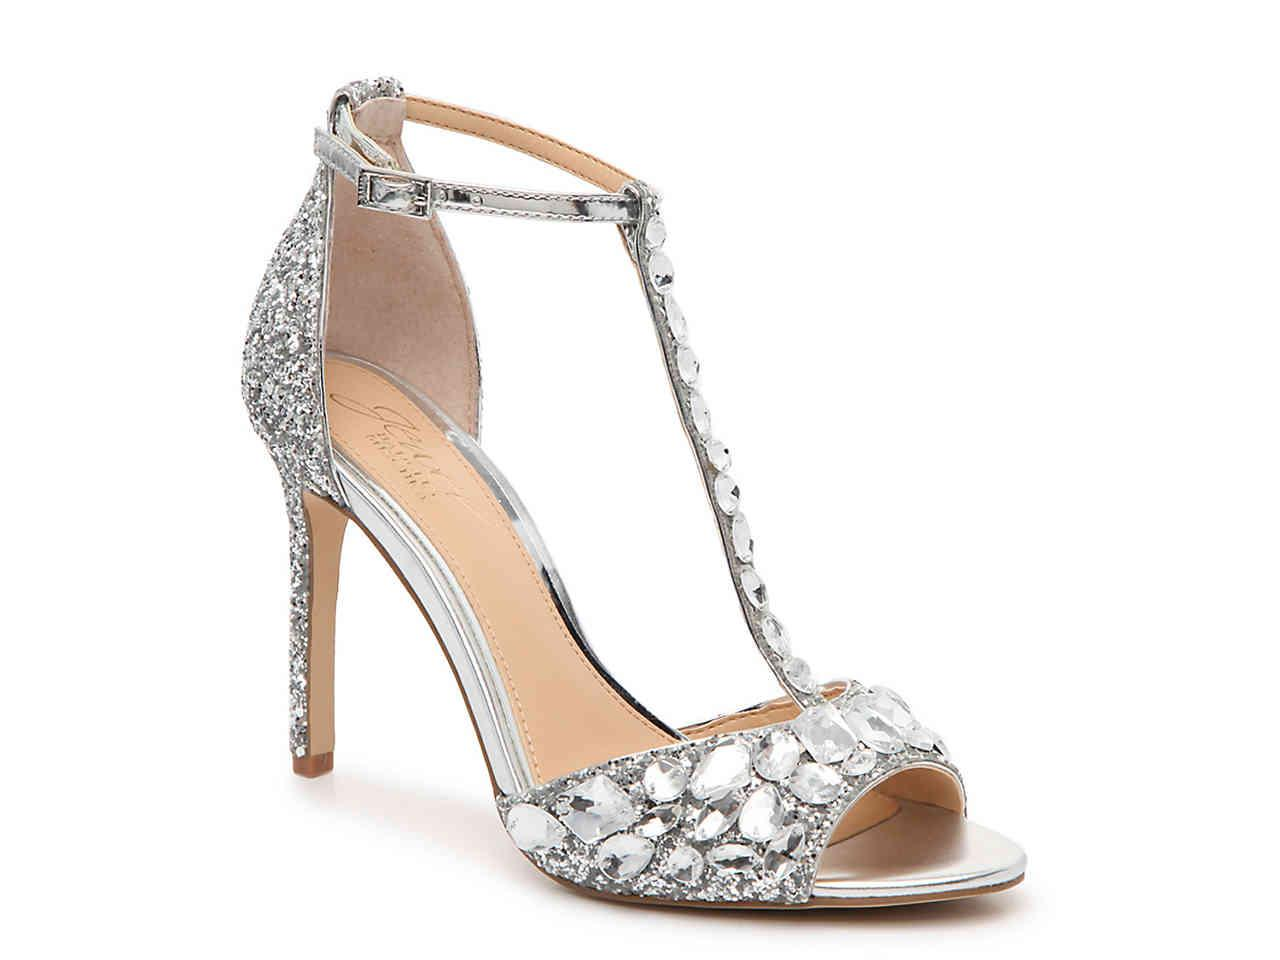 e233559268b Badgley Mischka - Metallic Graciella Sandal - Lyst. View fullscreen